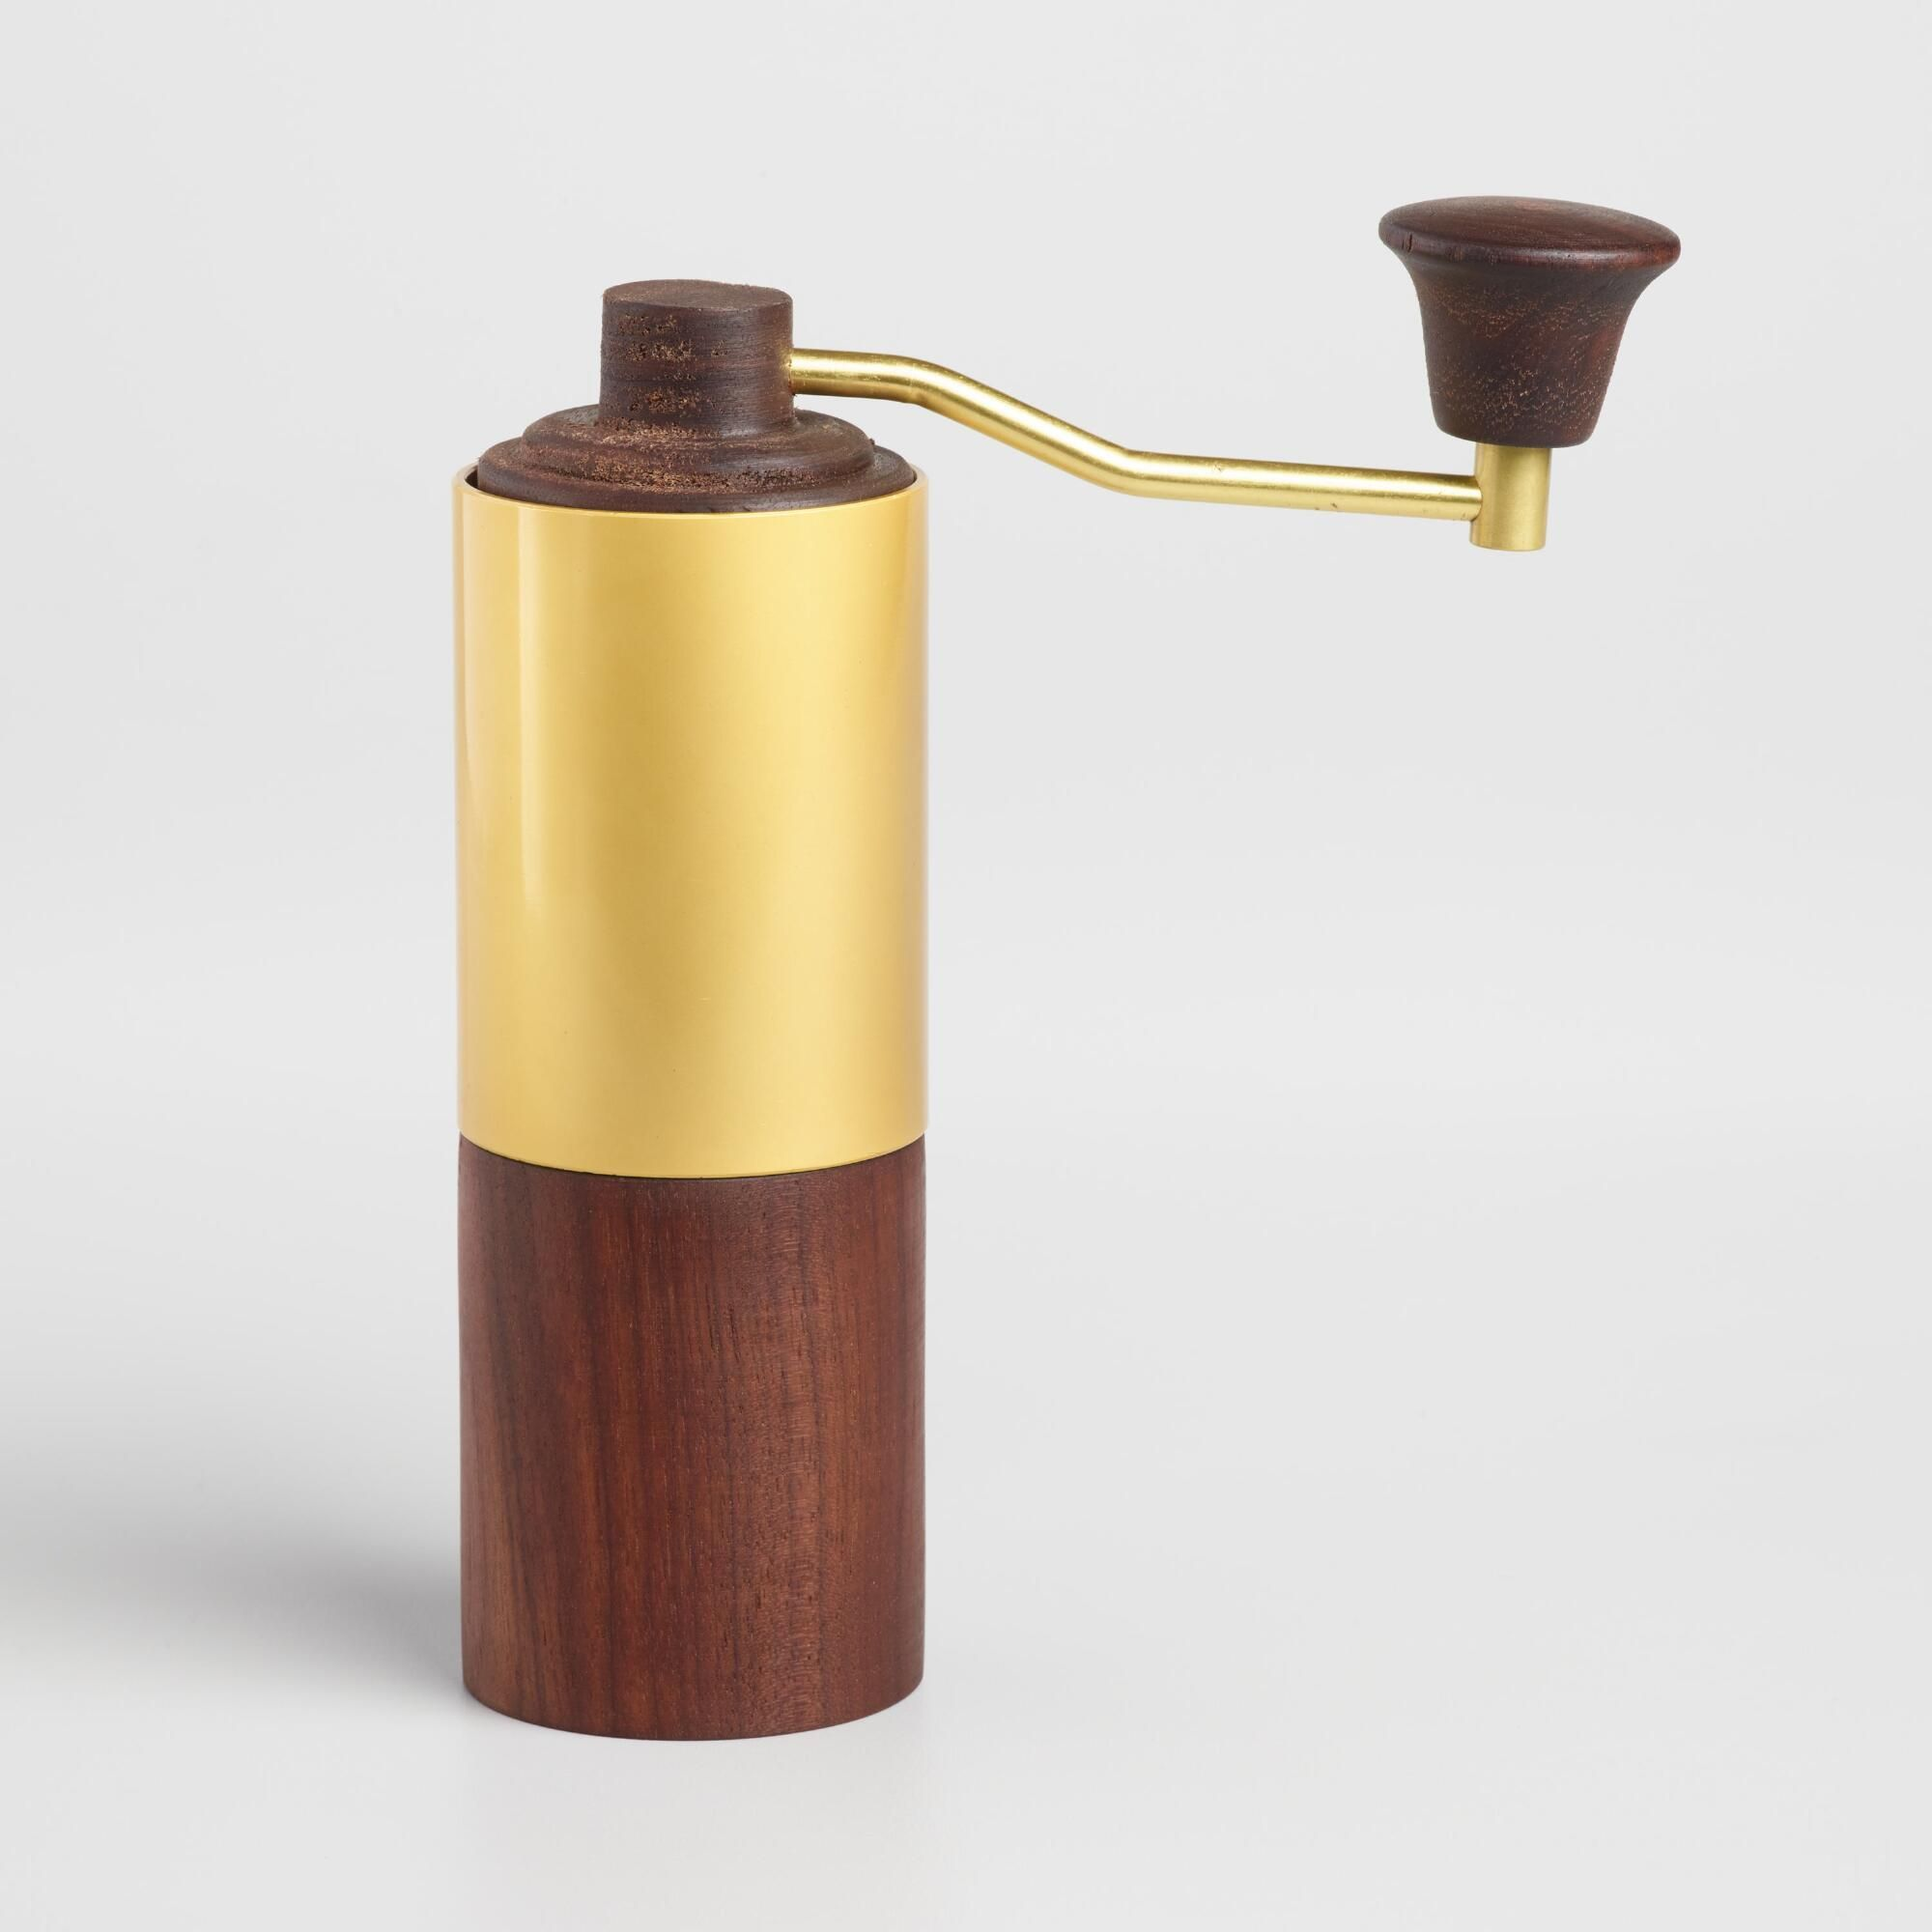 Walnut Wood Manual Coffee Grinder With Gold Handle By World Market Coffee Grinder Ideas Of Coffee In 2020 Manual Coffee Grinder Coffee Grinder Best Coffee Grinder